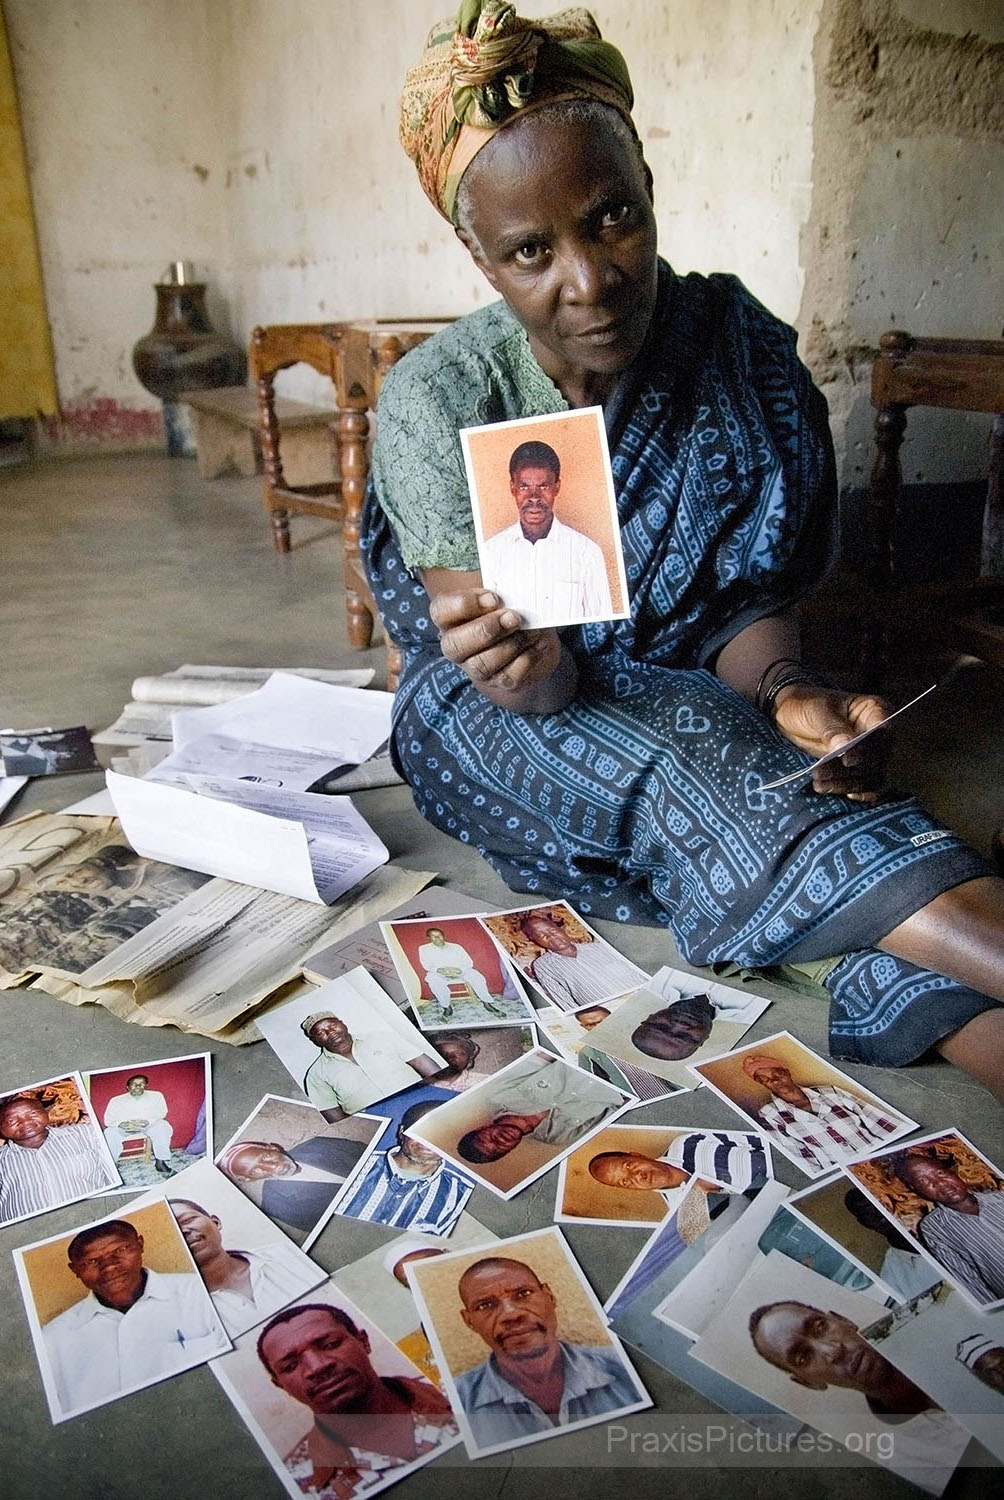 "MELANIA - In response to the companies' and the government's denials Melania, a Kahama resident, has been collecting these photos of people who claim to have witnessed the killings or lost loved ones during the evictions.  ""…This one was there when it happened … this one lost her son … this one went back afterwards to try and dig out his friends … this one lost her home and her grandchildren …""   A number of organizations have been calling for an independent inquiry to resolve the controversial issue including Amnesty International, the Council of Canadians, Mining Watch Canada, the New Democratic Party, Friends of the Earth, and Rights and Democracy. But when an international NGO fact-finding mission attempted to visit Bulyanhulu to investigate the allegations they were barred from entering the area by an armed roadblock, they reported that they were intimidated by the police and were given the impression that they were  ""under surveillance and could possibly be apprehended.""   Melania's two eldest sons, Jonathan and Ernest were among the fifty-two miners who were allegedly buried alive during the evictions. The family owned the pit that they were working in at the time, so Melania lost her livelihood as well as her two children in August 1996.  In a recent report published by religious groups in Tanzania it estimated that  ""that the concentration of gold mining in the hands of large multinational companies at the expense of small-scale artisan miners has put 400,000 people out of work."""